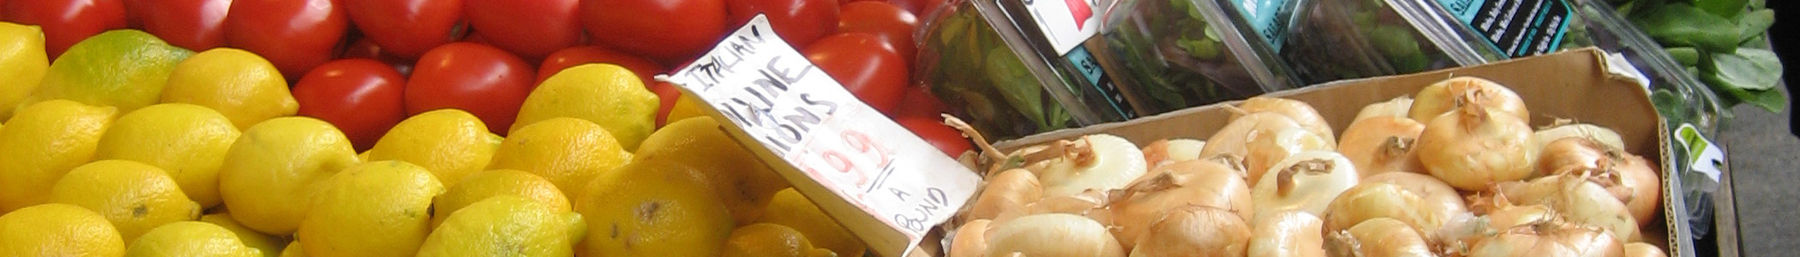 Wikivoyage page banner farmers market.jpg